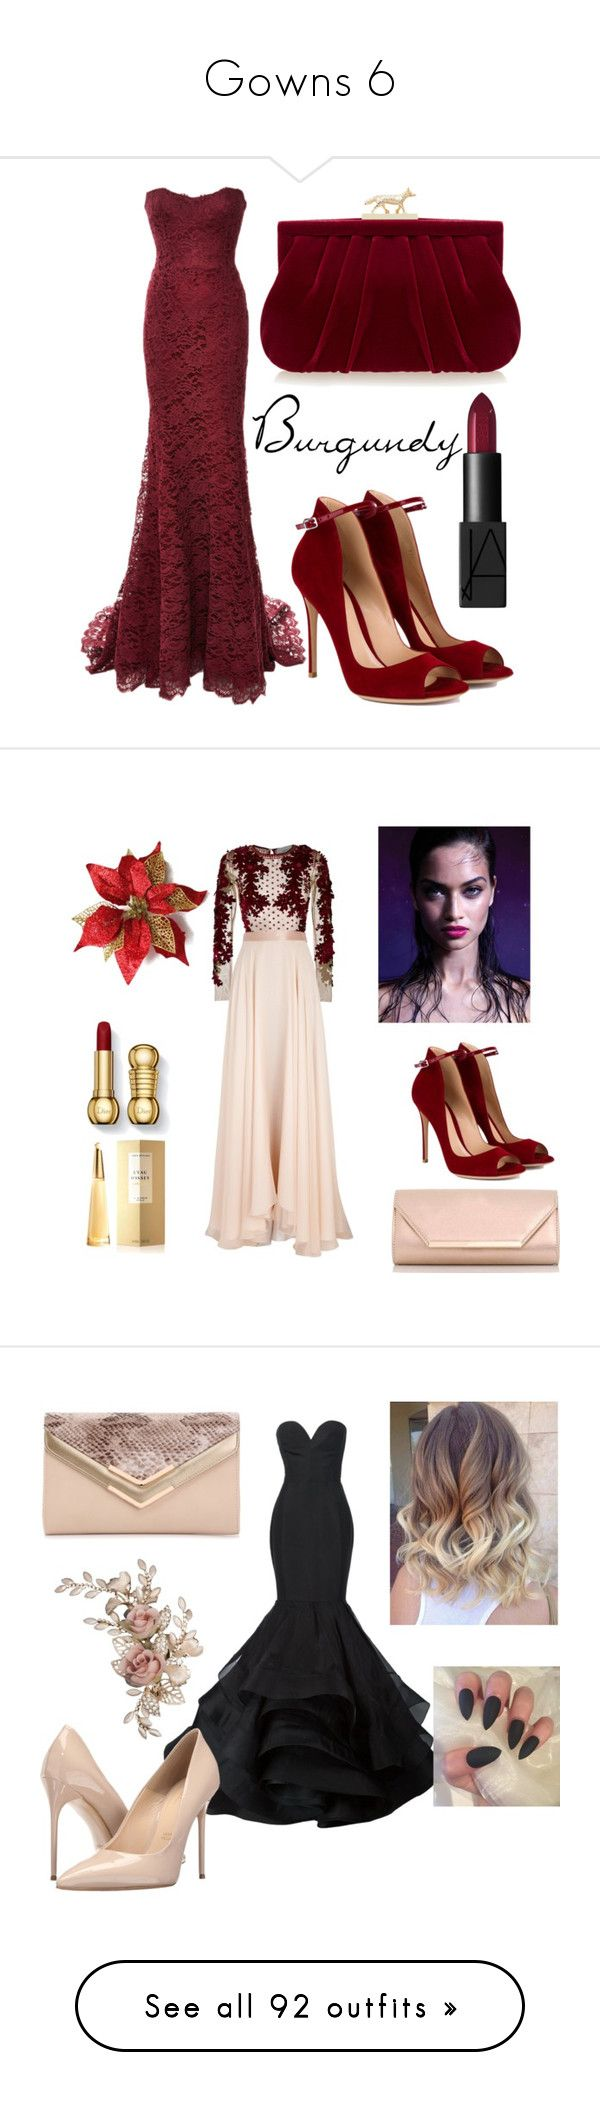 """""""Gowns 6"""" by hallierosedale ❤ liked on Polyvore featuring dresses, gowns, gown, long dresses, beige, beige dress, floor length gowns, chiffon gowns, beige evening dress and Monique Lhuillier"""